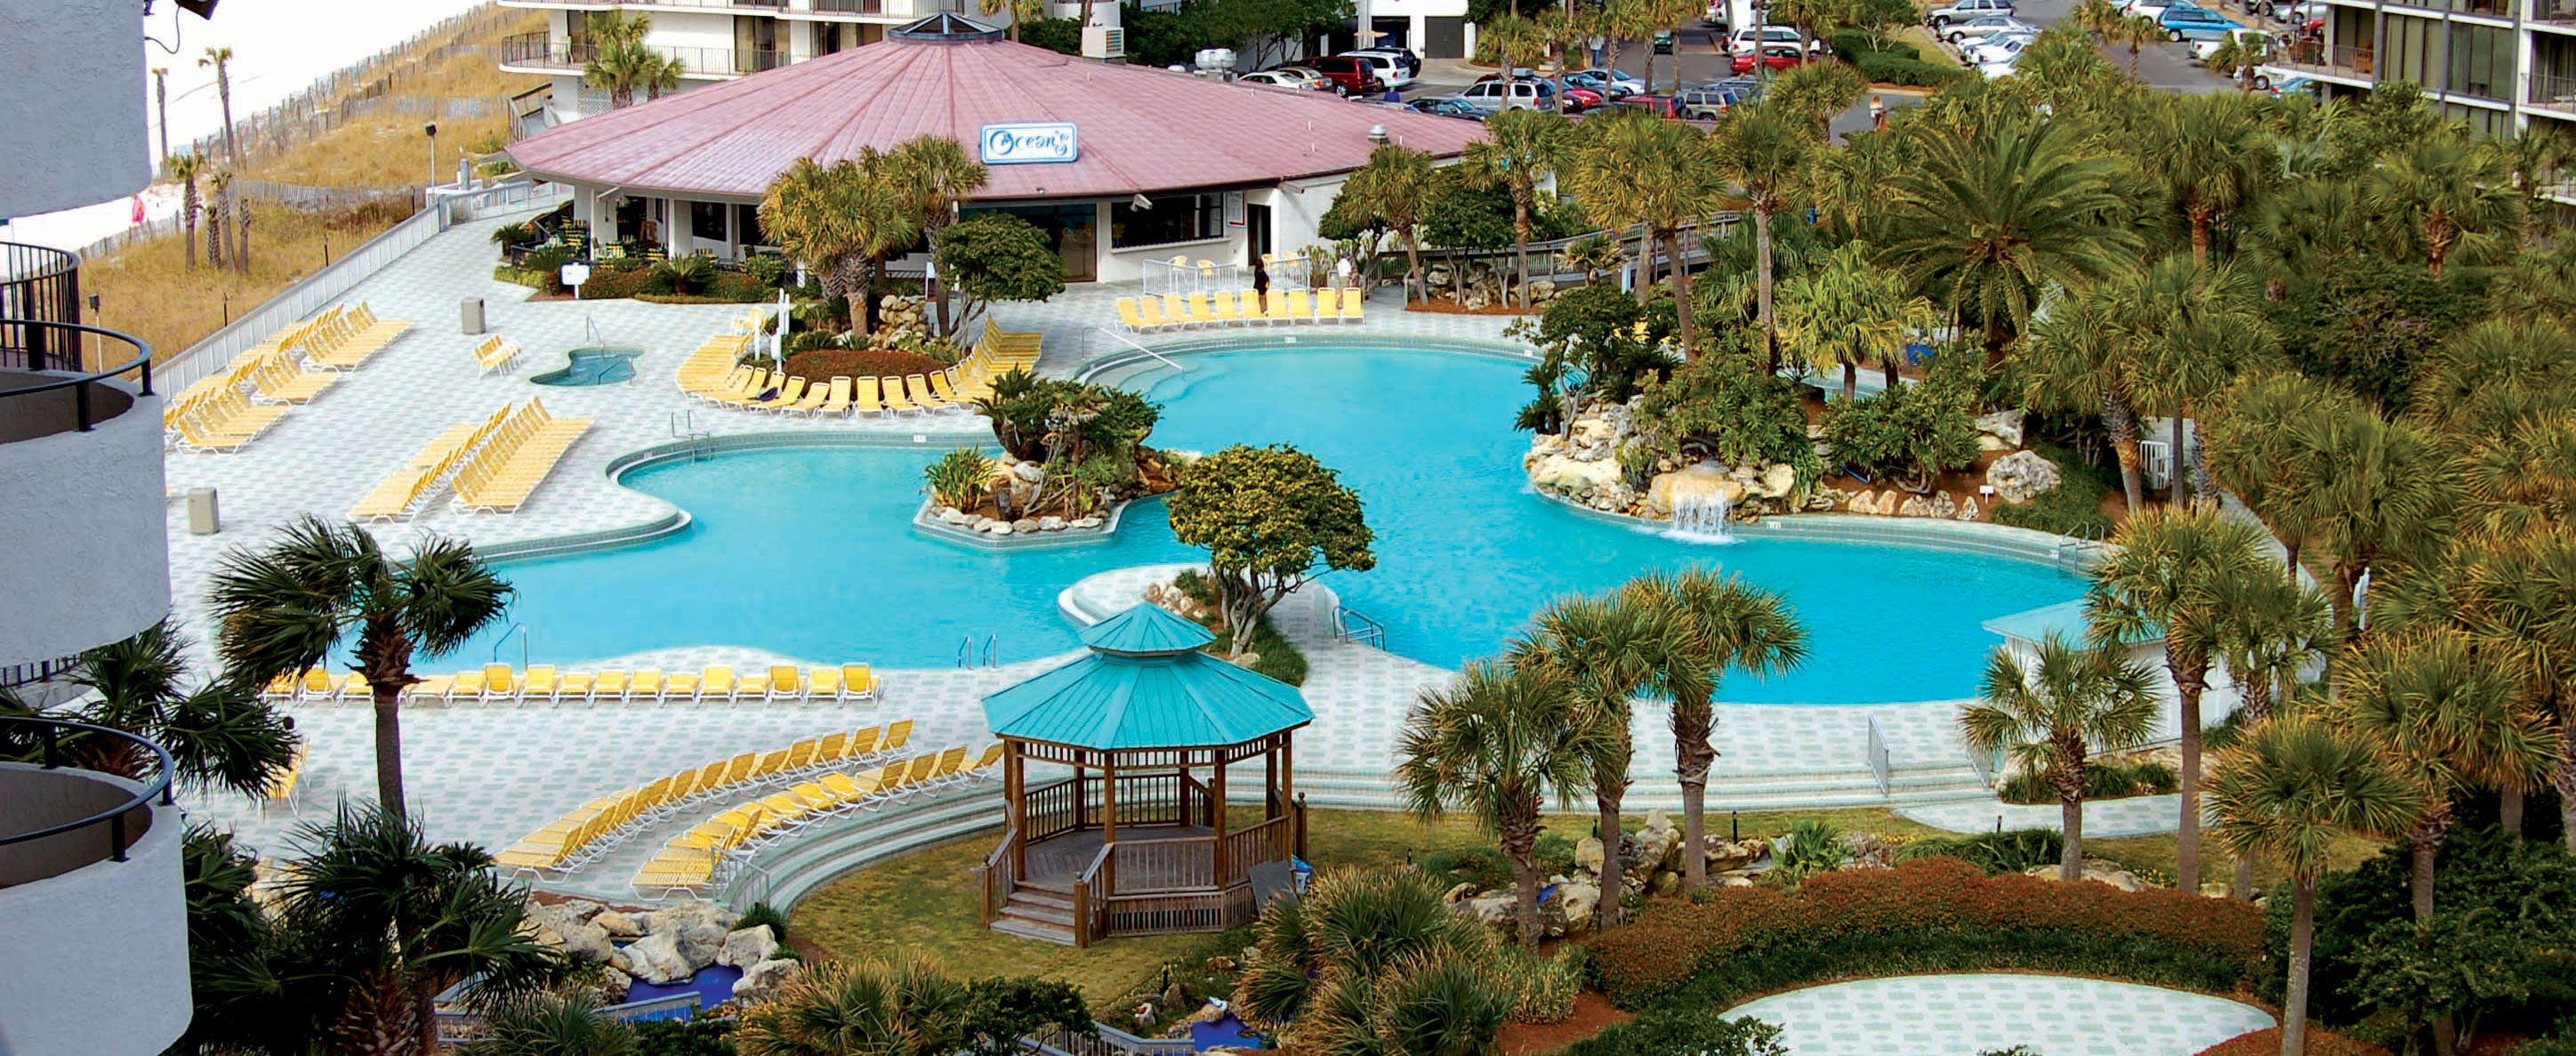 Panama city beach extended stay r j tours for The edge water